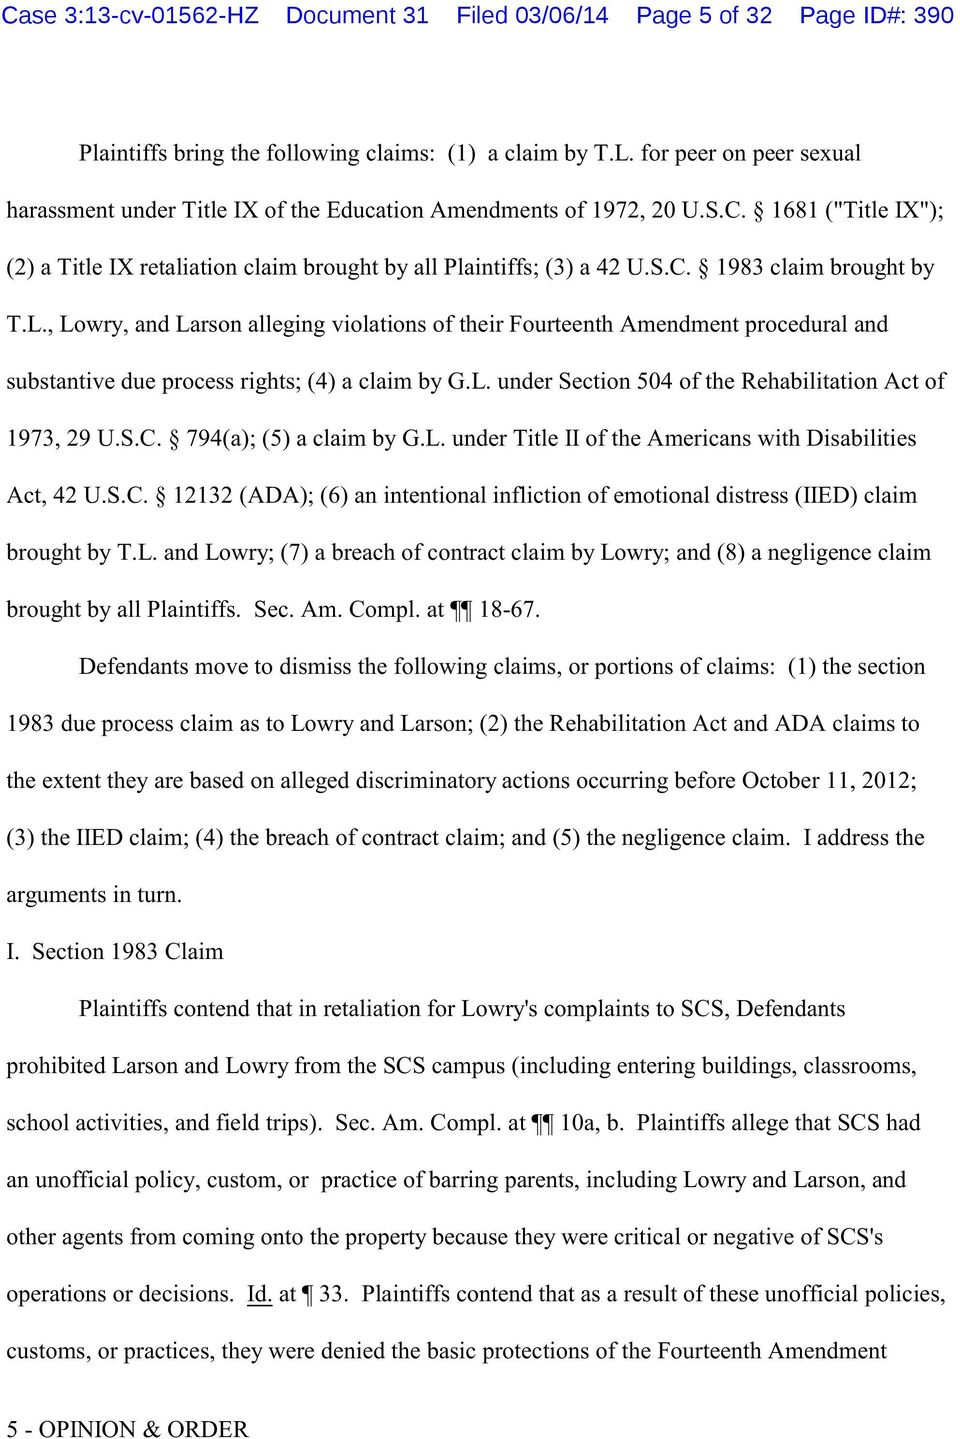 L., Lowry, and Larson alleging violations of their Fourteenth Amendment procedural and substantive due process rights; (4) a claim by G.L. under Section 504 of the Rehabilitation Act of 1973, 29 U.S.C.